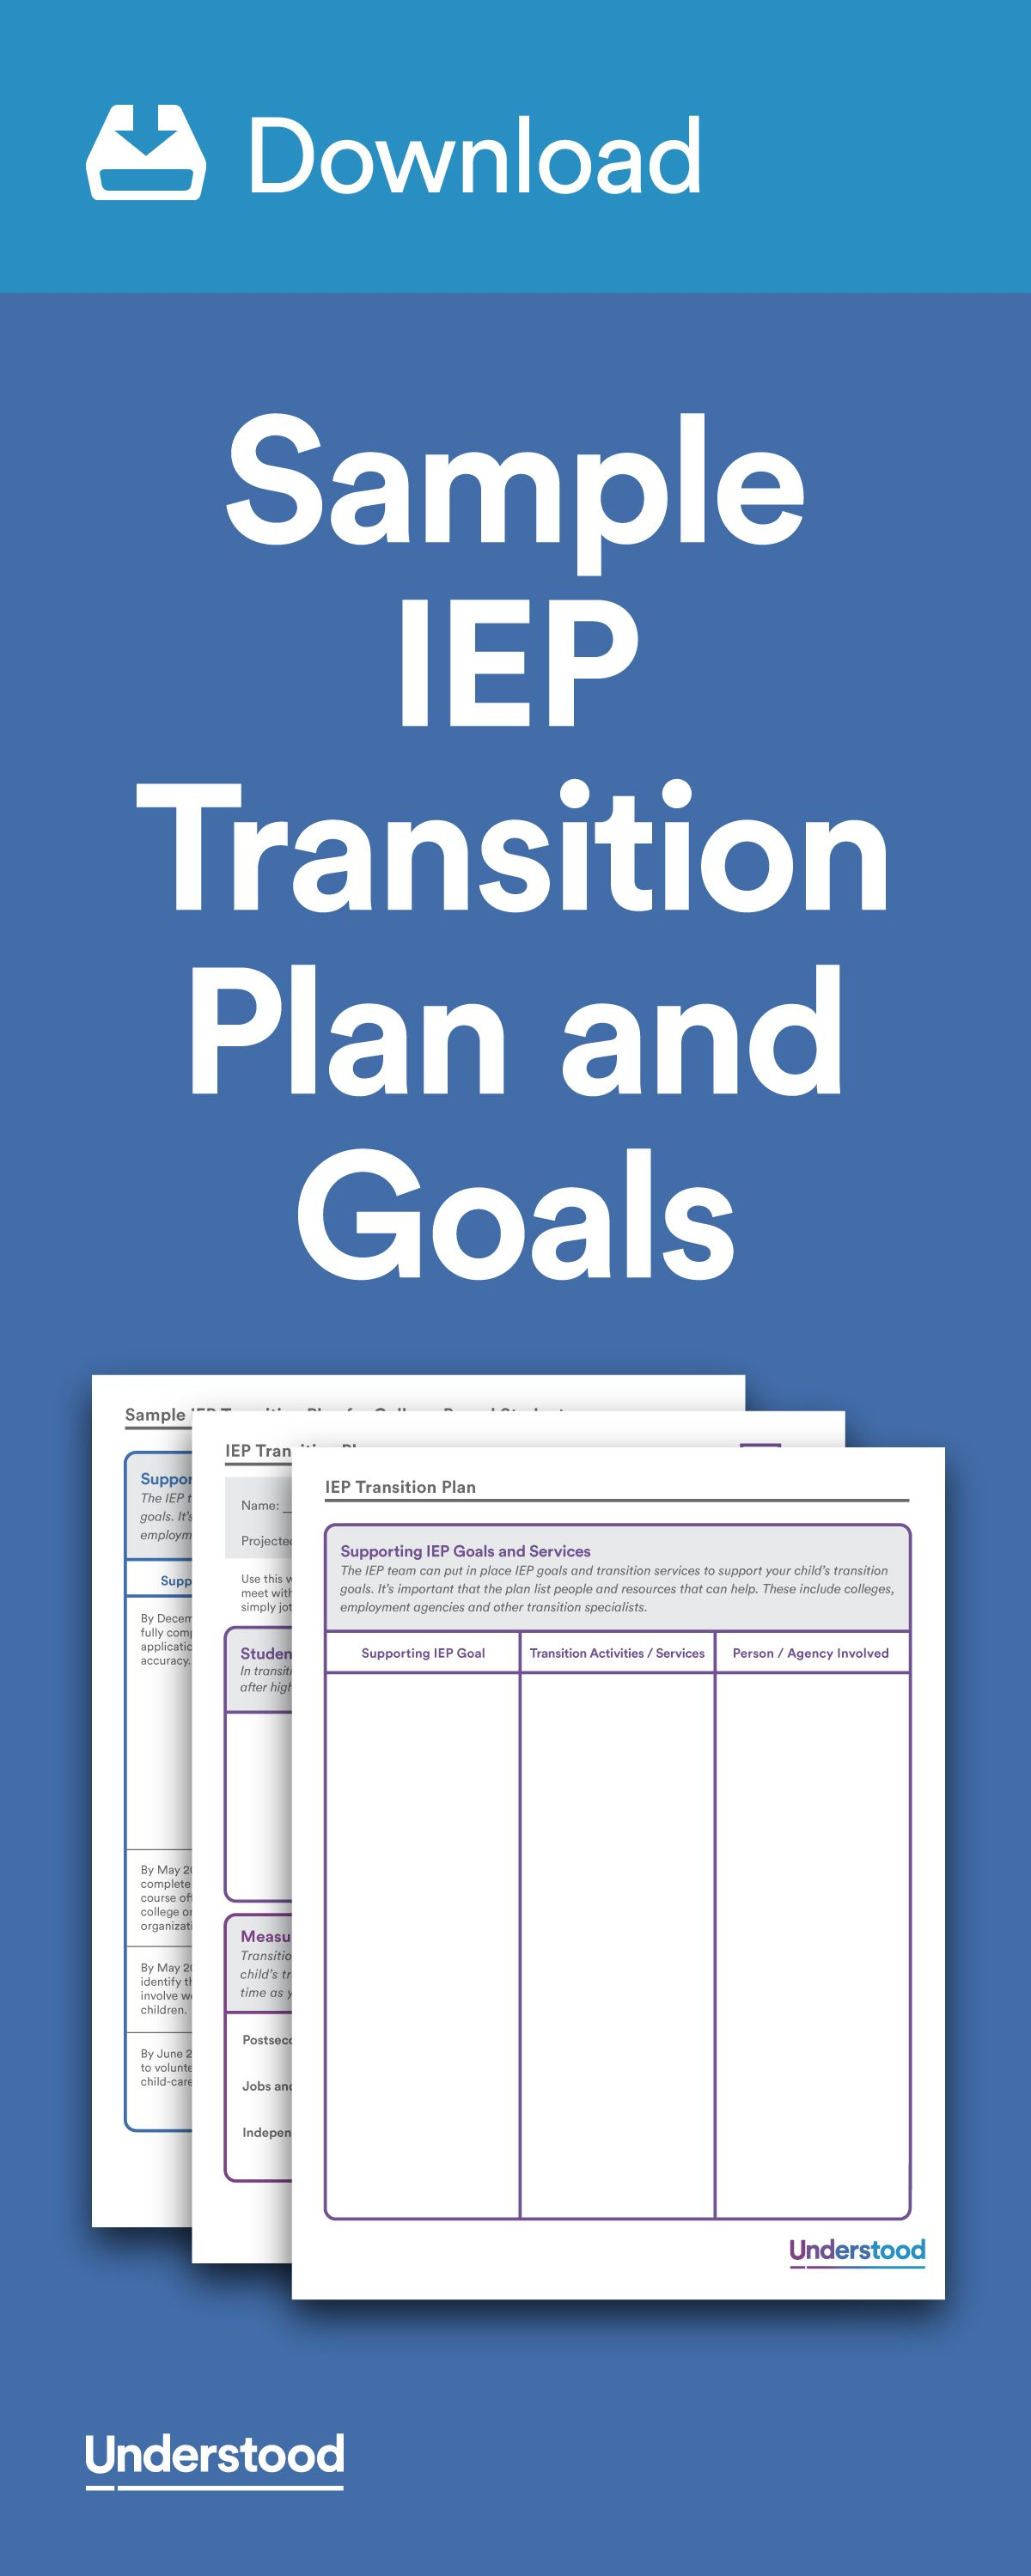 Download Sample Iep Transition Plan And Goals